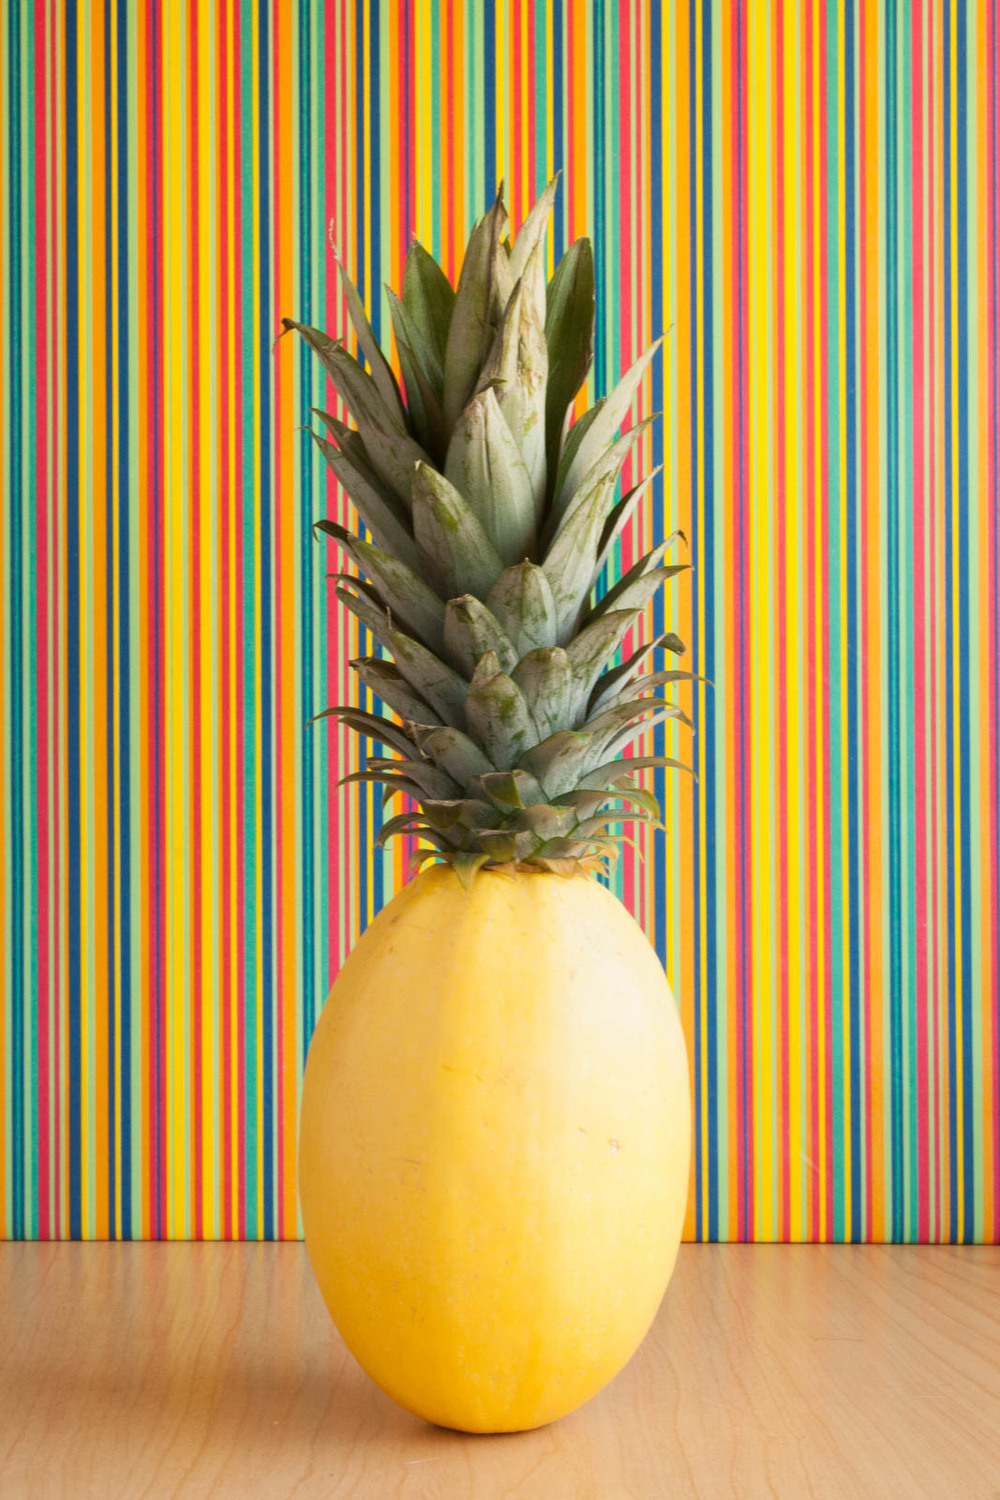 Prank Pineapple with Striped Background